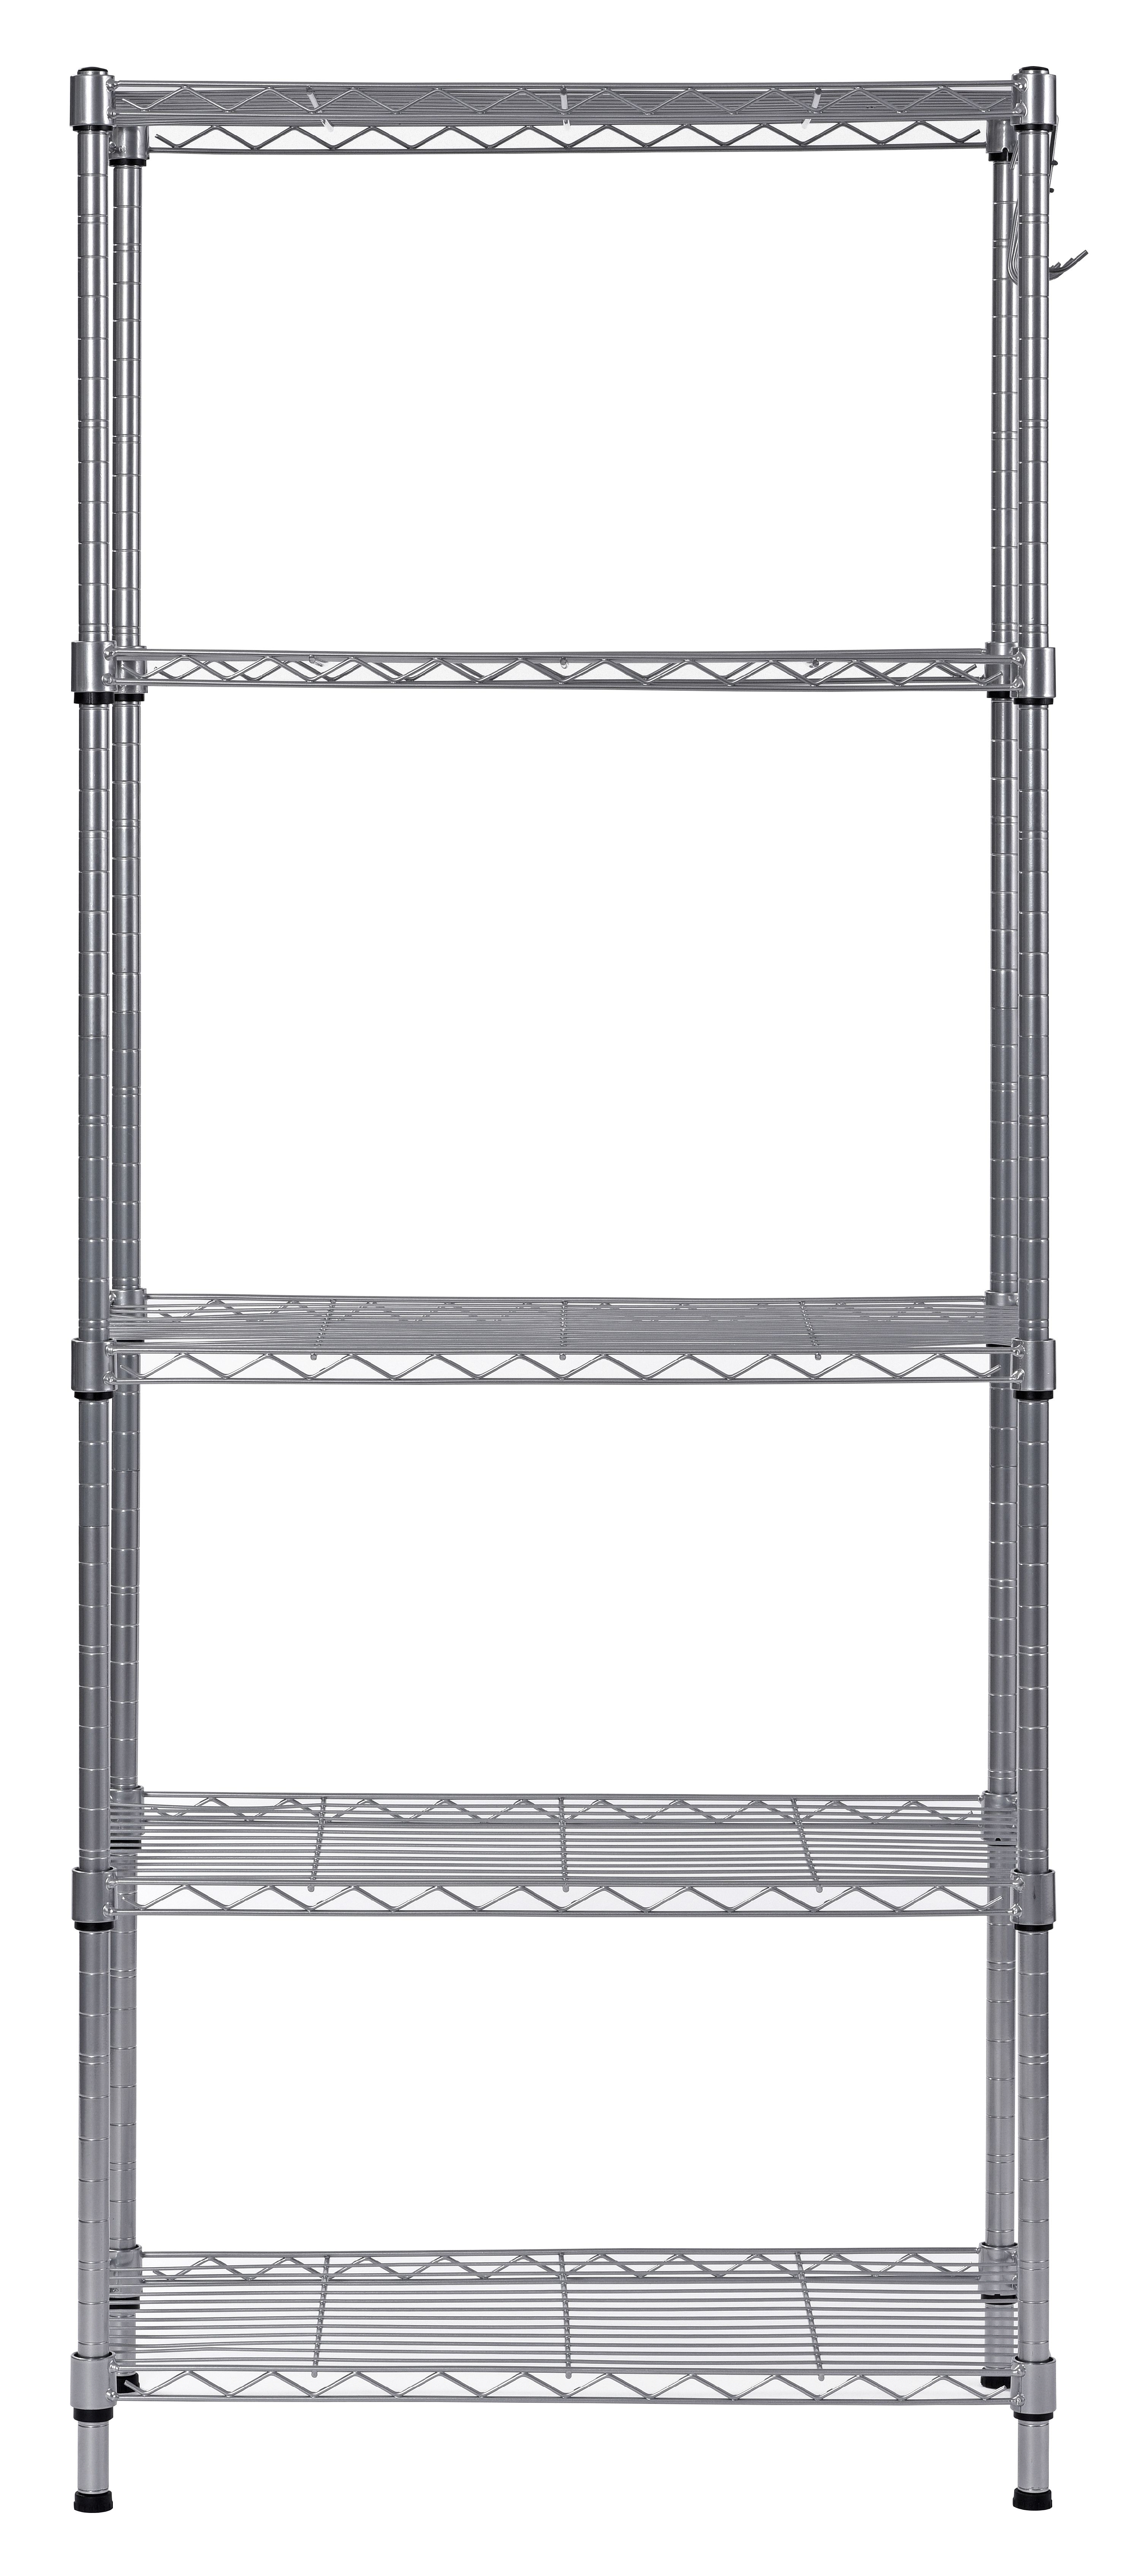 muscle rack 5 tier wire shelving unit with hooks in silver